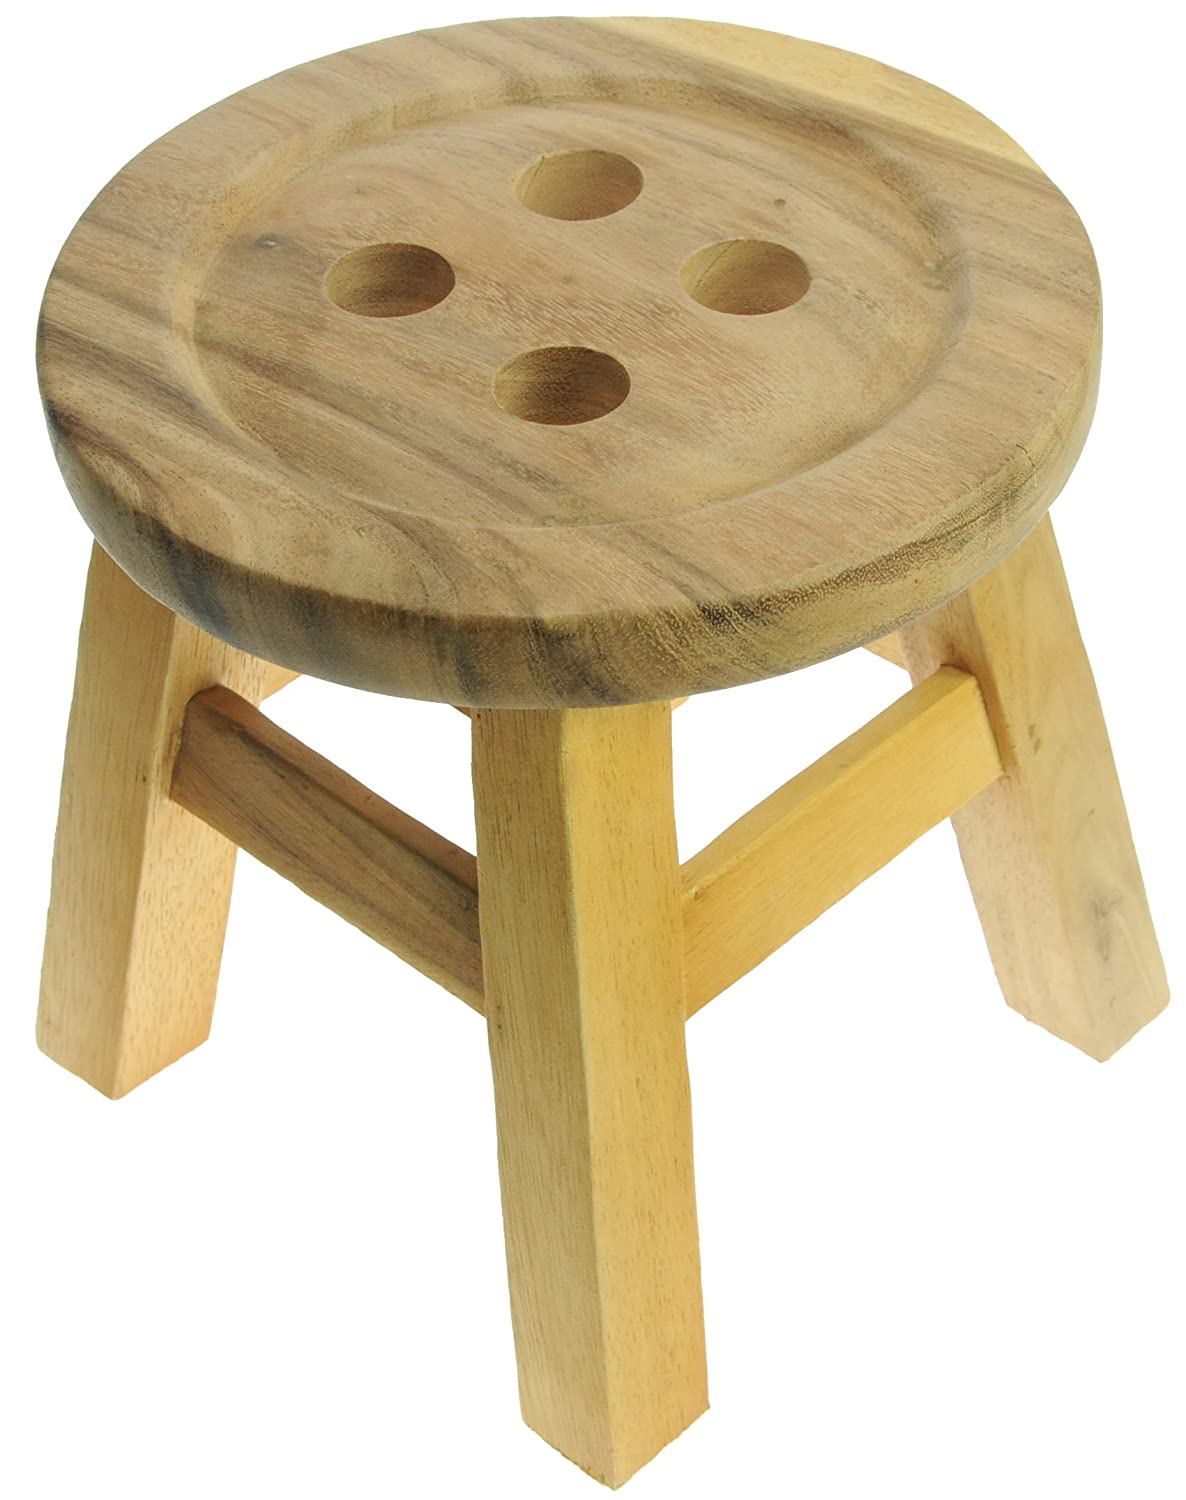 Natural Button Stool - Wooden All My Gift Ideas